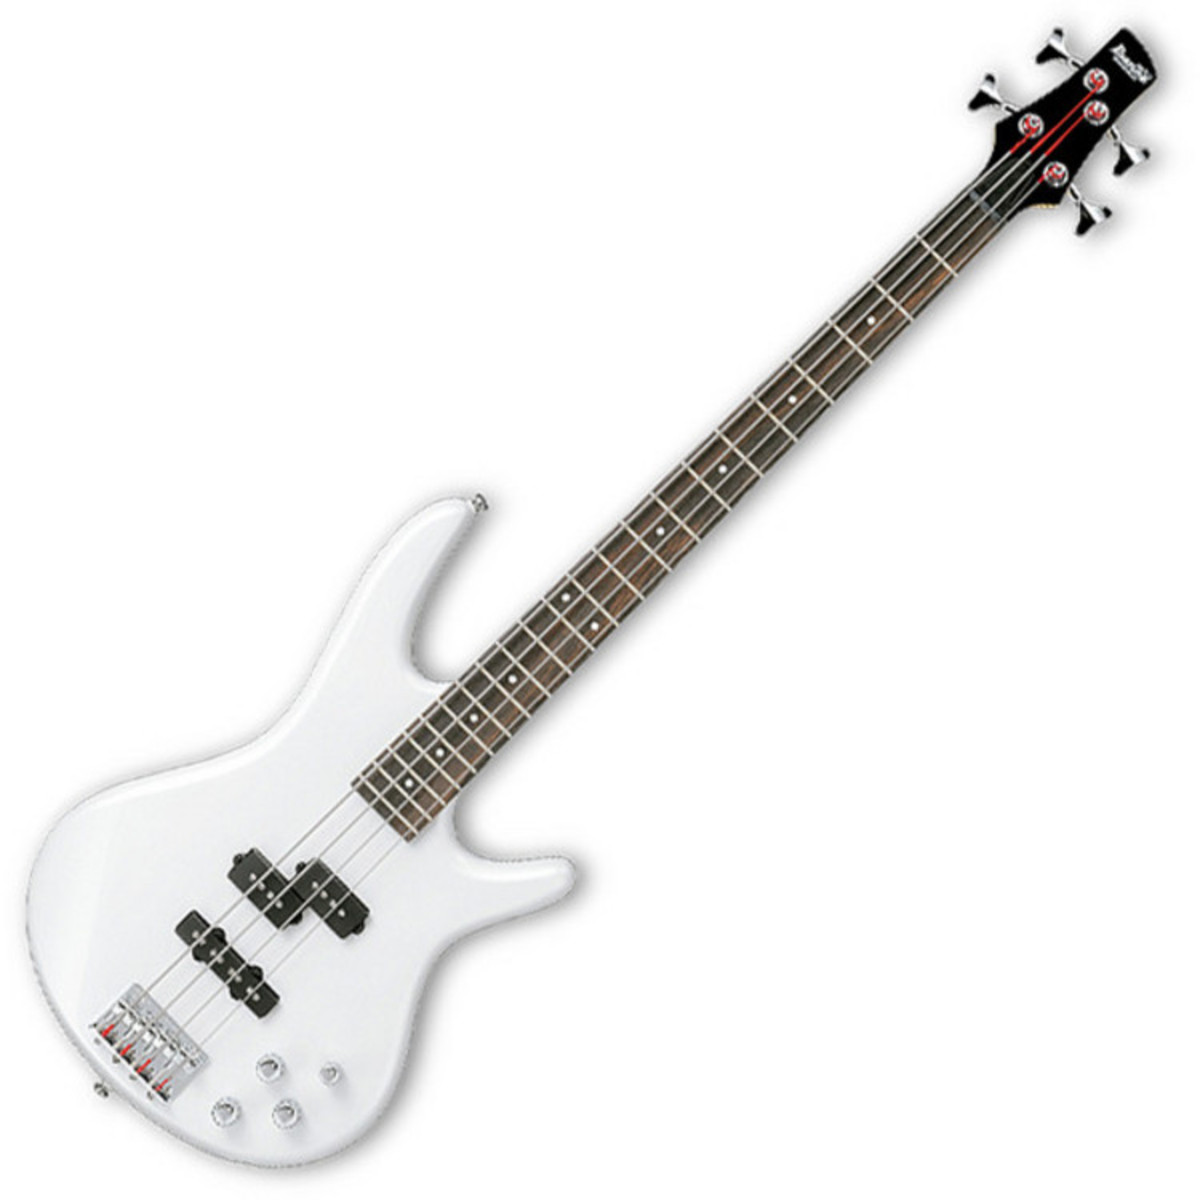 Disc Ibanez Gsr200 Gio Bass Guitar Piano White With Free